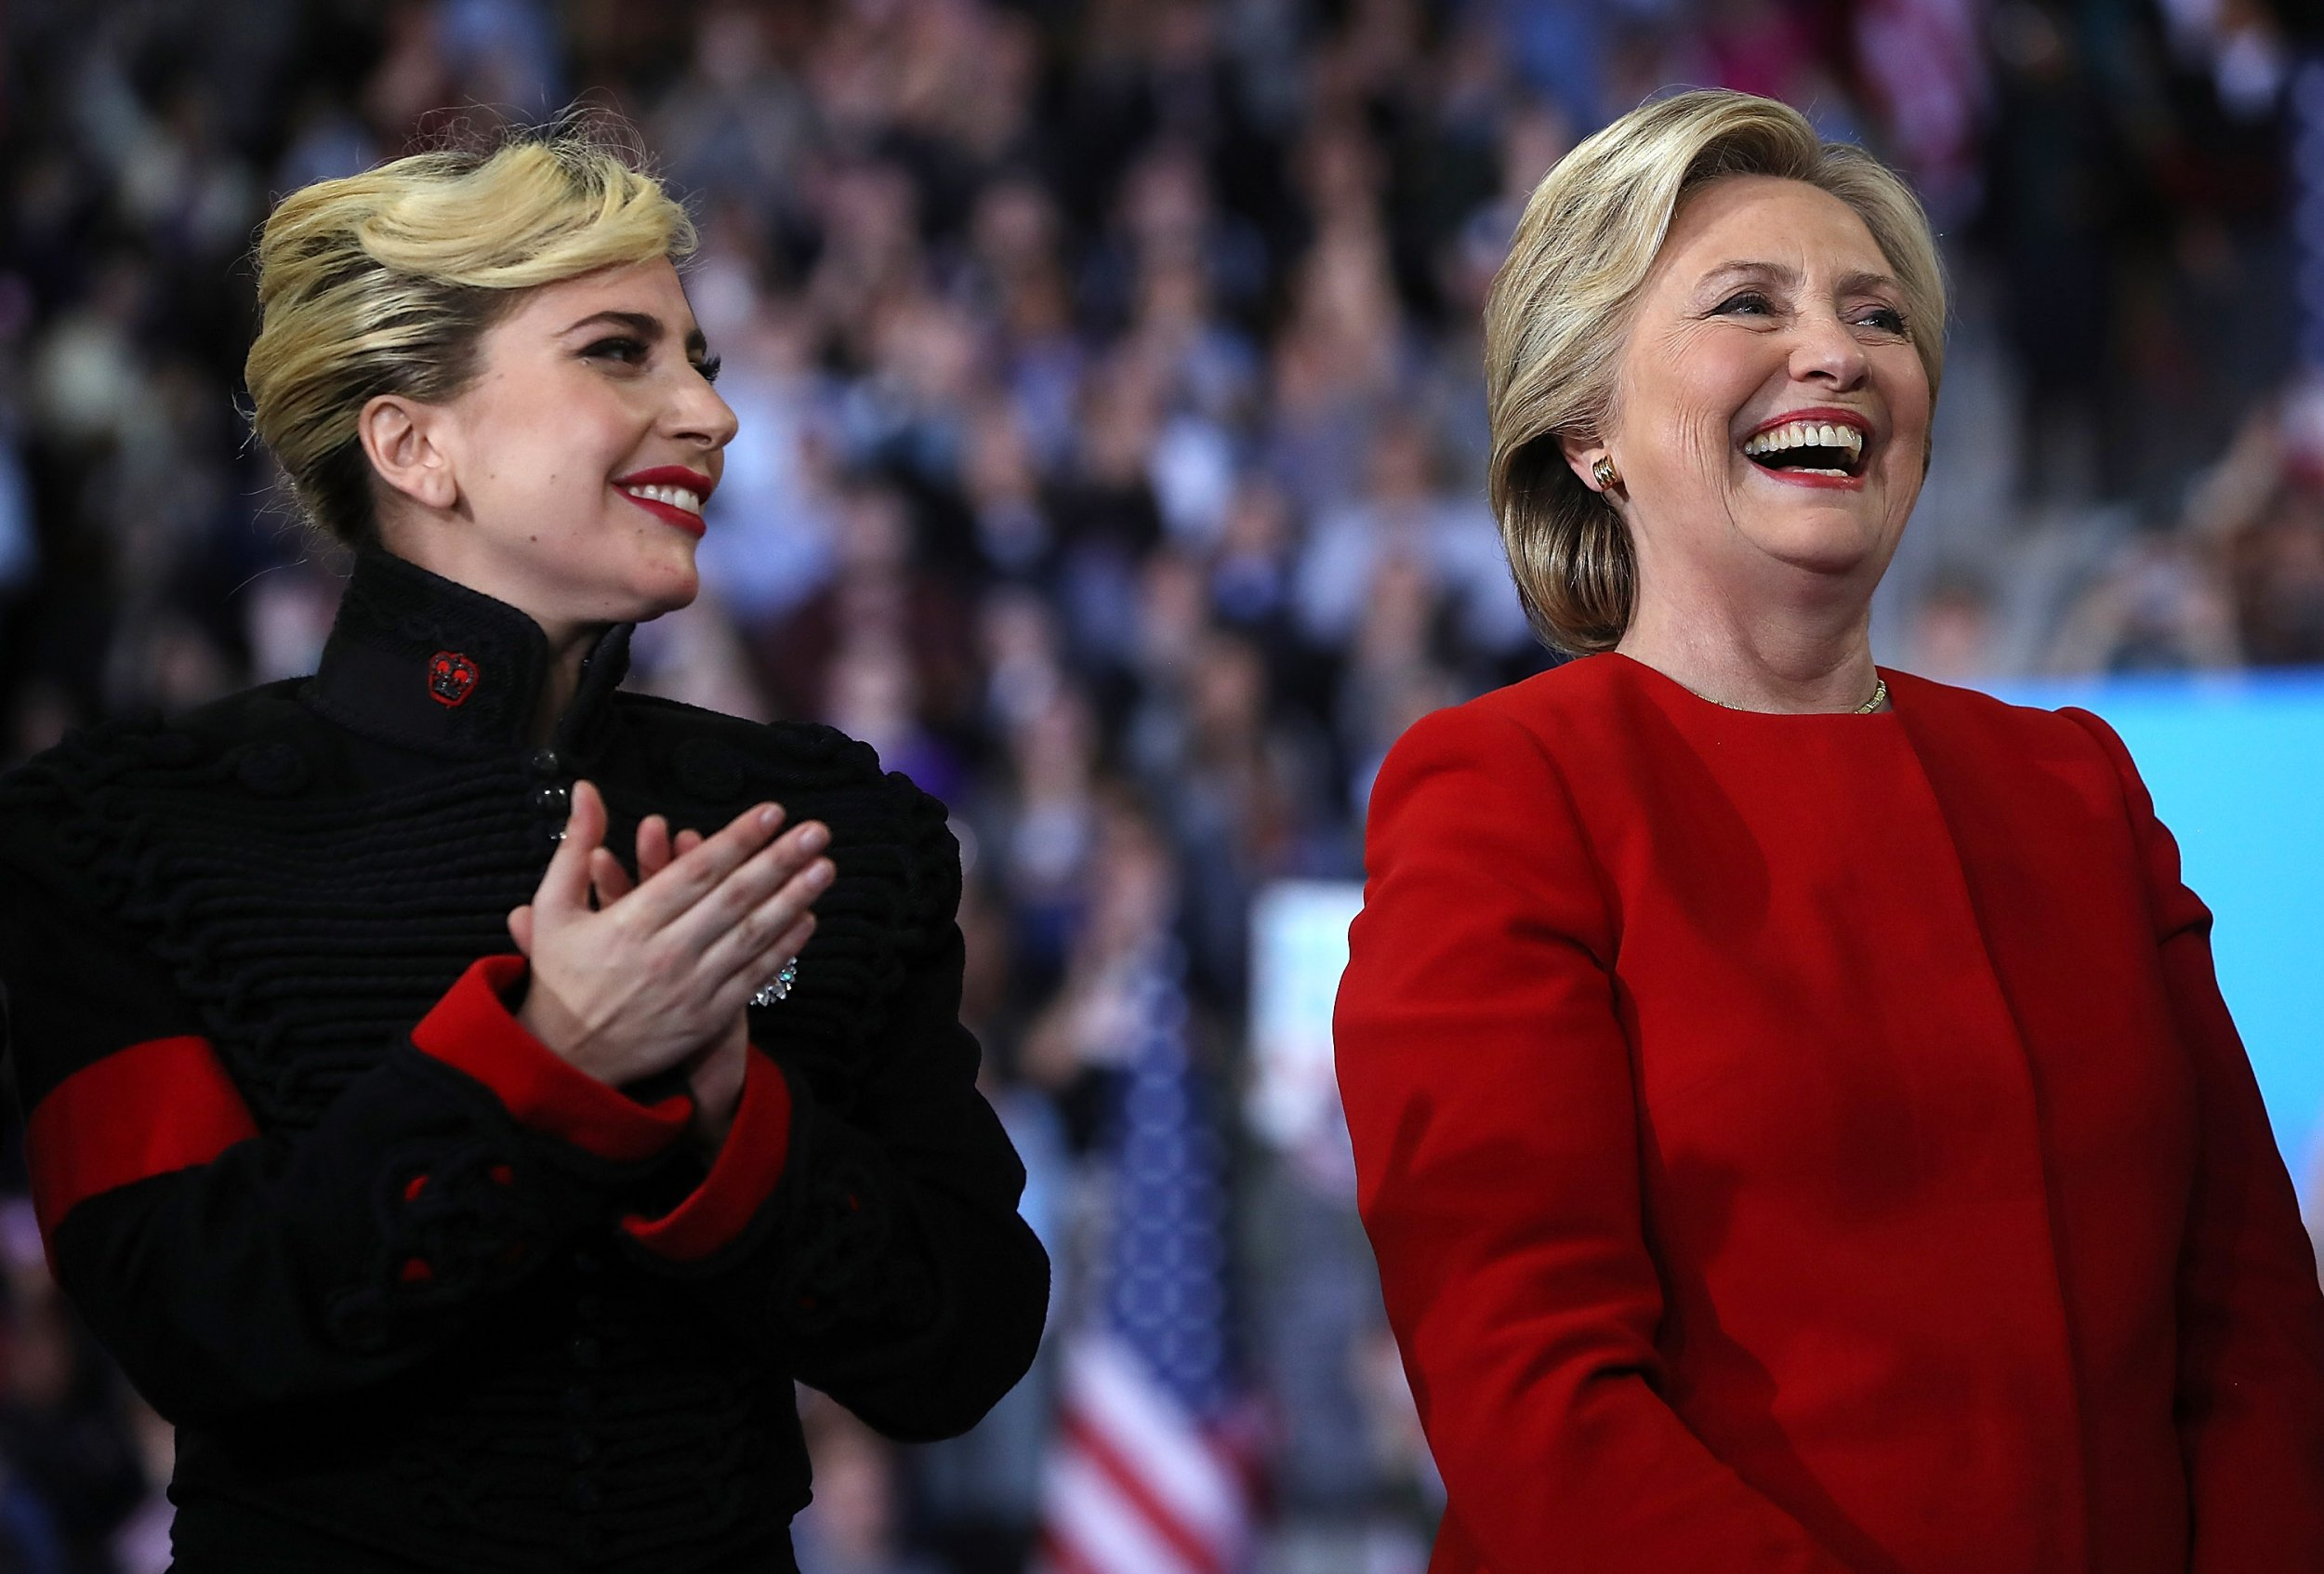 Lady Gaga and Hillary Clinton